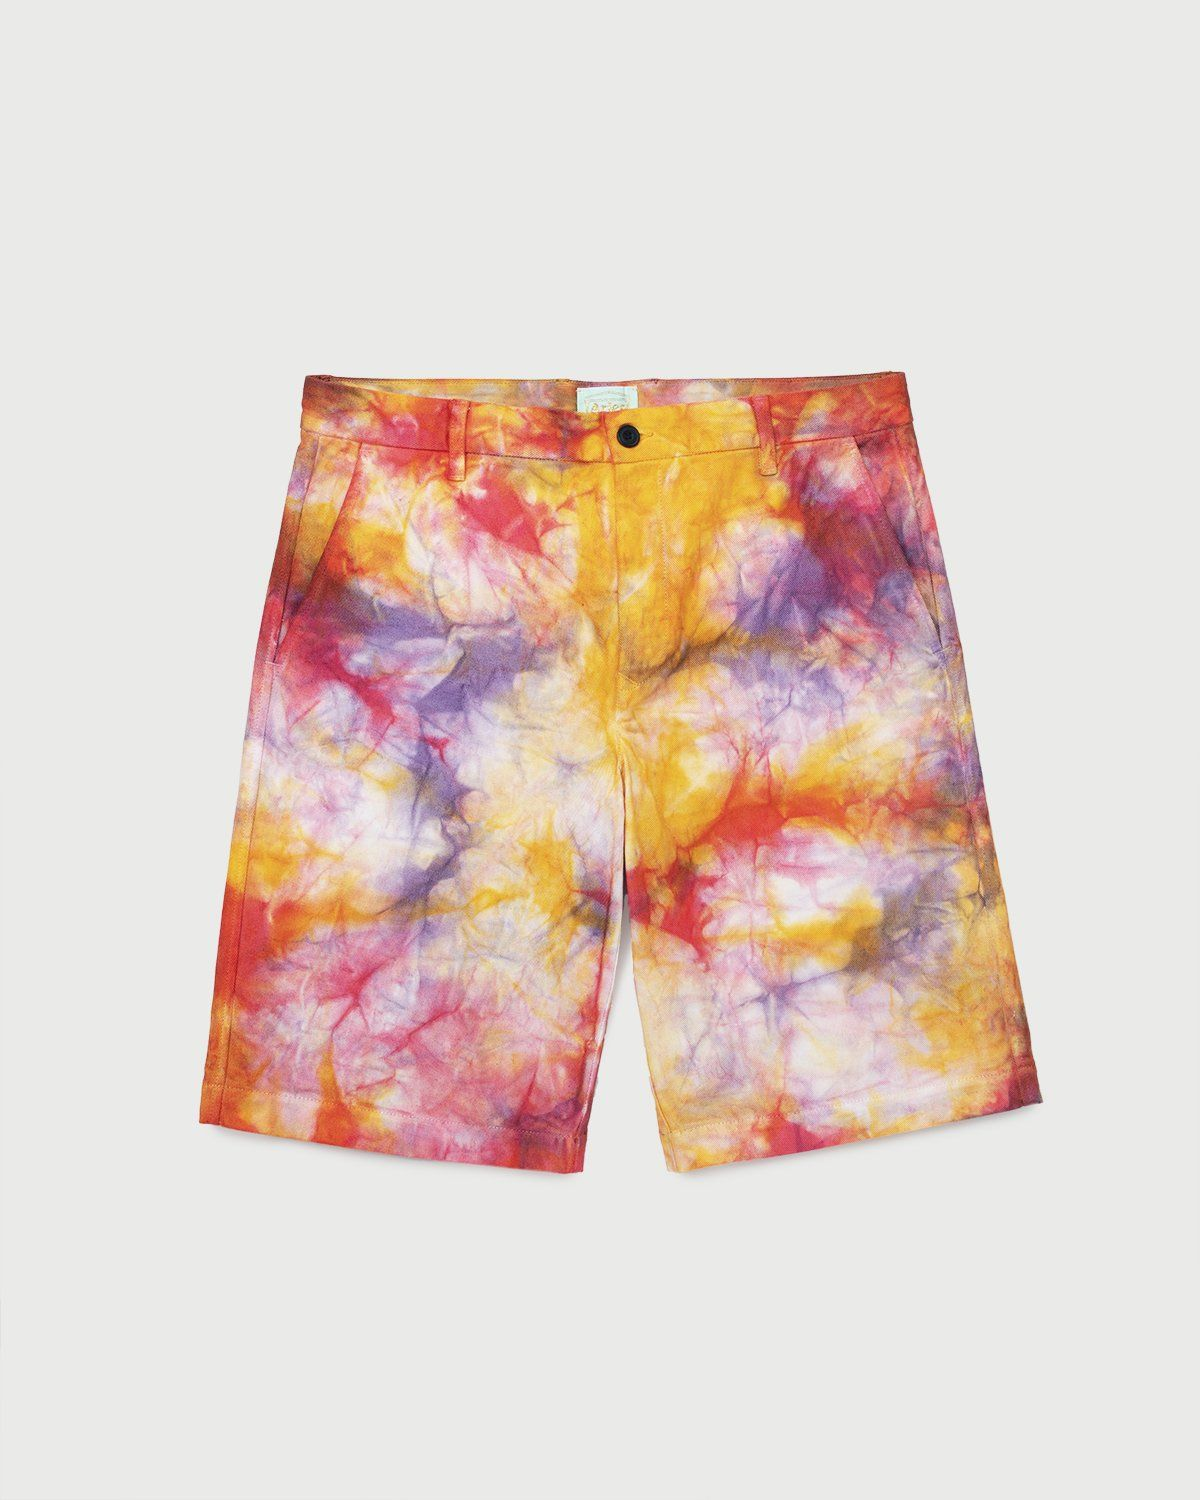 Aries - Tie Dye Chino Shorts Multicolor - Image 1